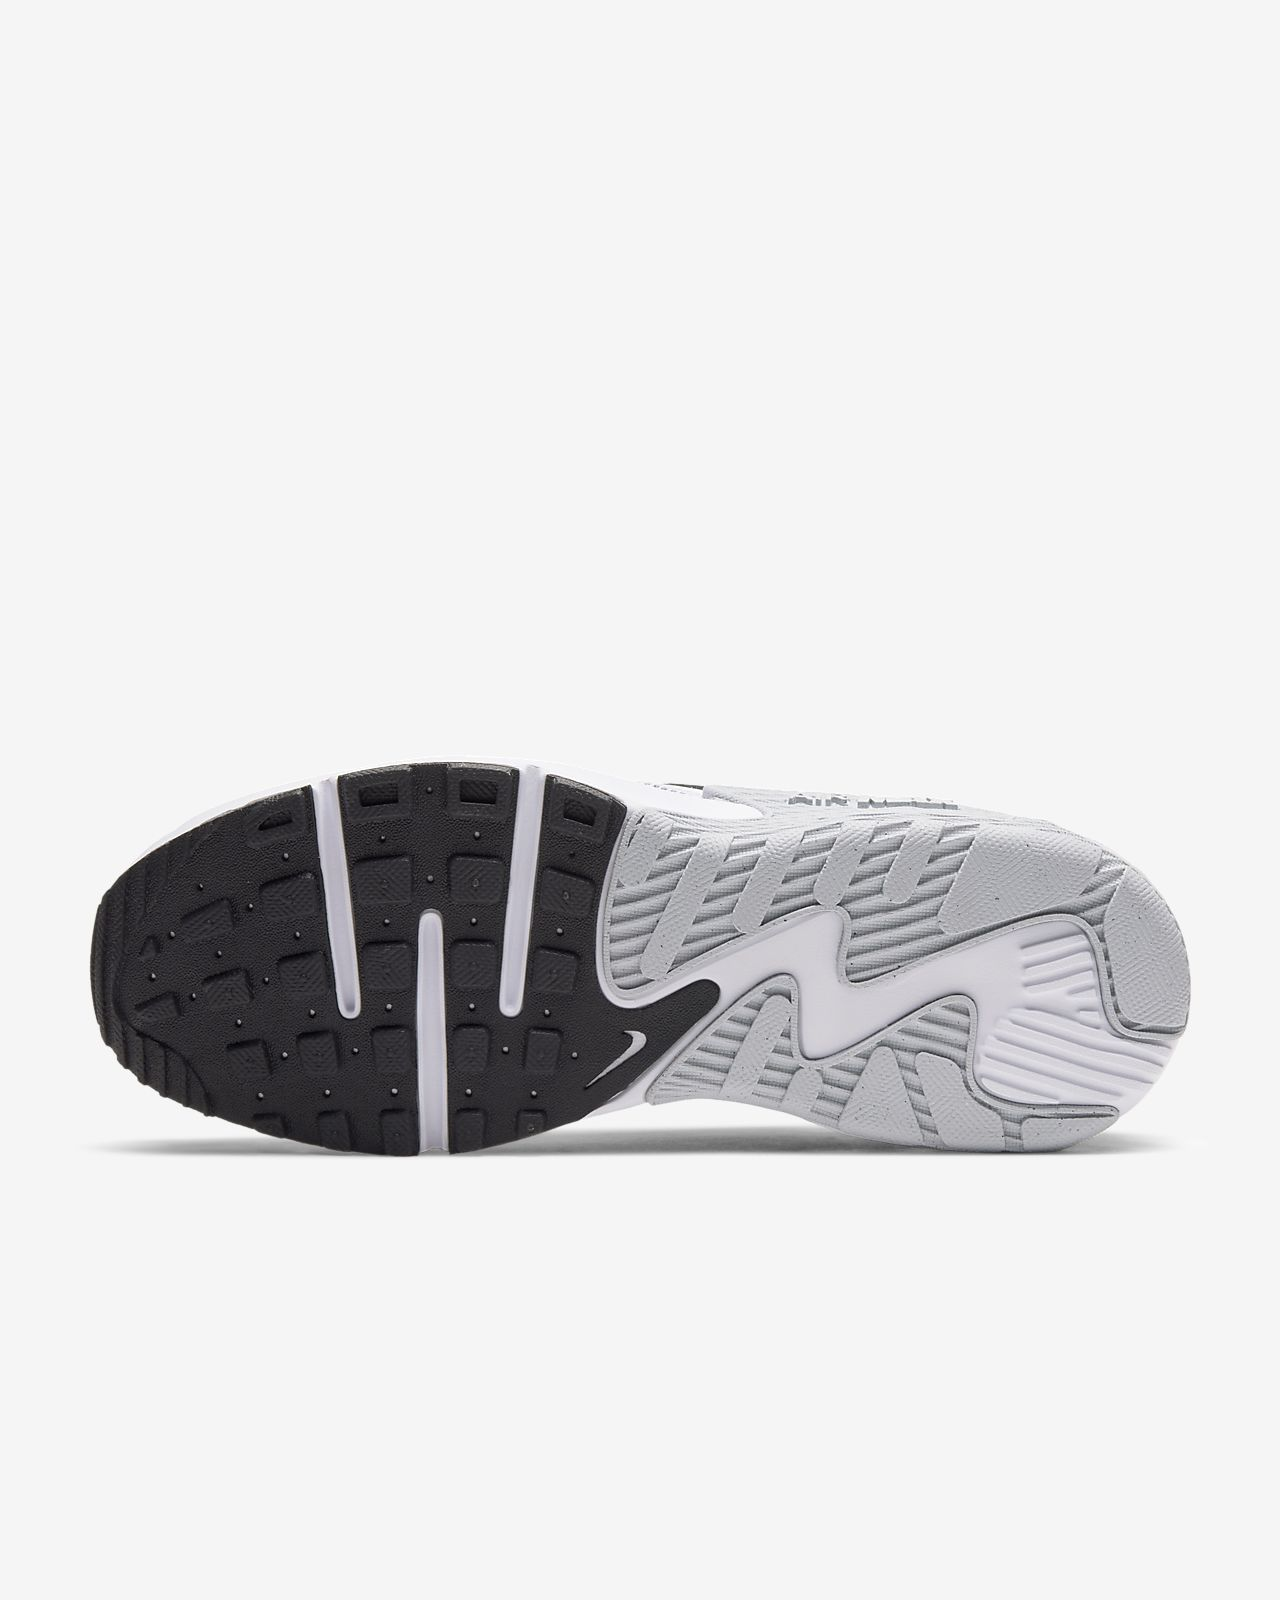 Nike Women's Air Max Excee Lifestyle Shoes in 2020   Air max